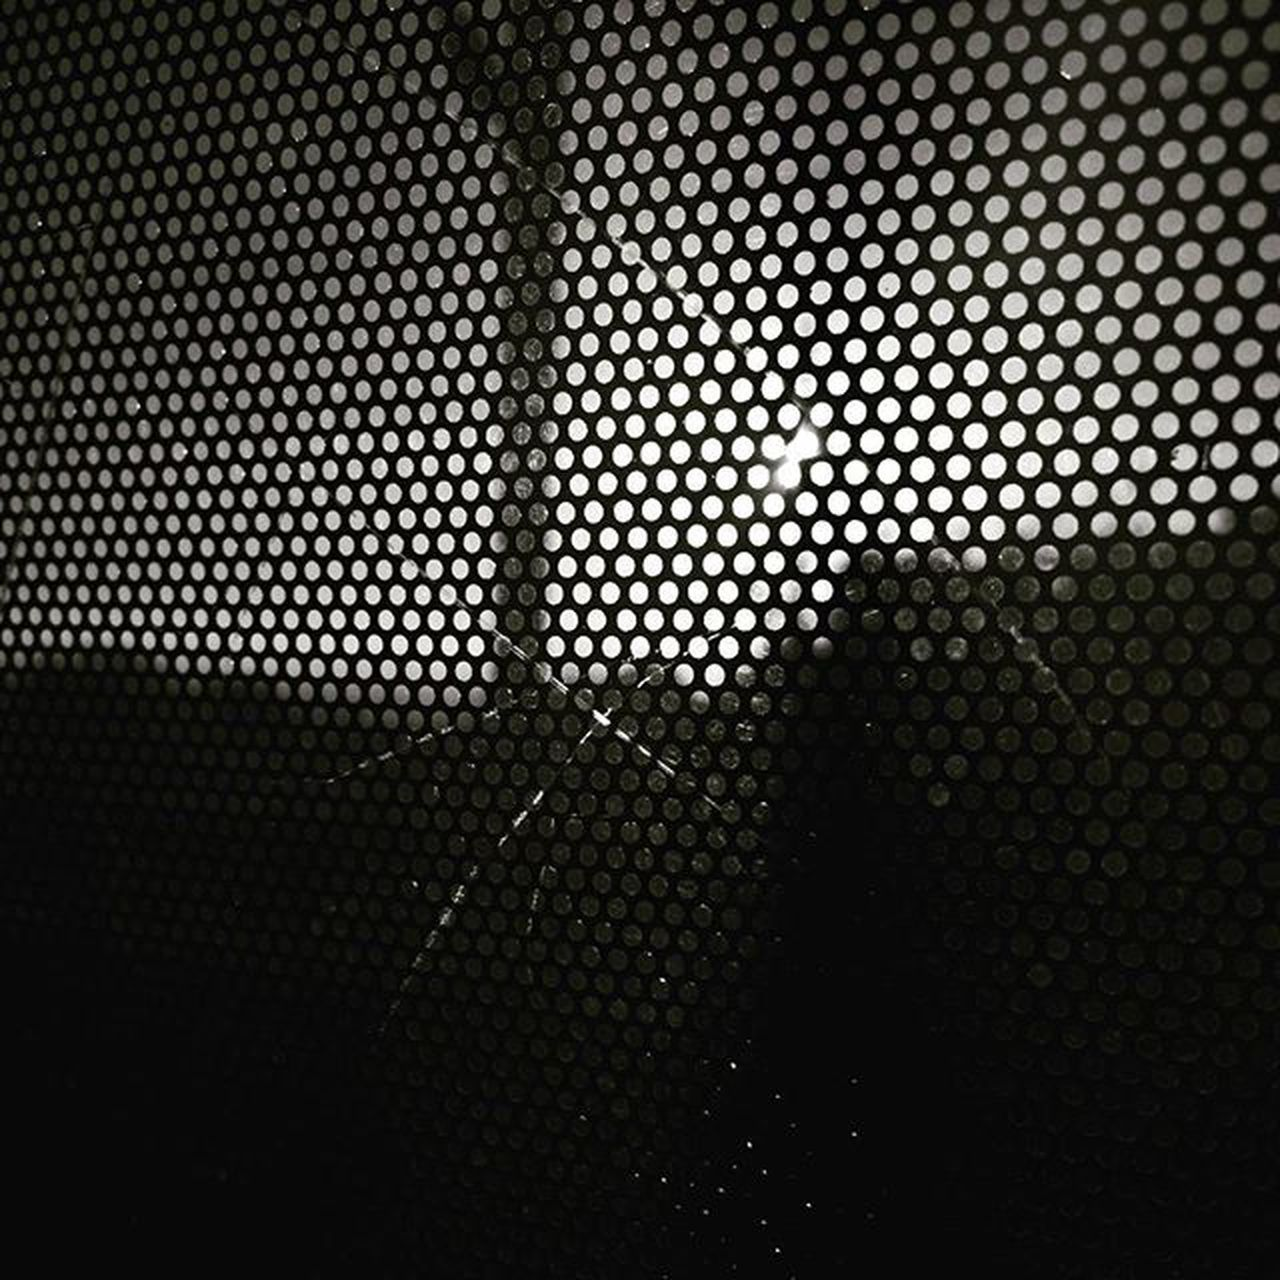 Goodmorning Thursday Blackandwhite Blancnoir Windows Photography Sunrise Traintrips Portugal Shadows Light Vscolife VSCO Enjoyit Life Sunlovers Sun Laliphotographyswagg Swag